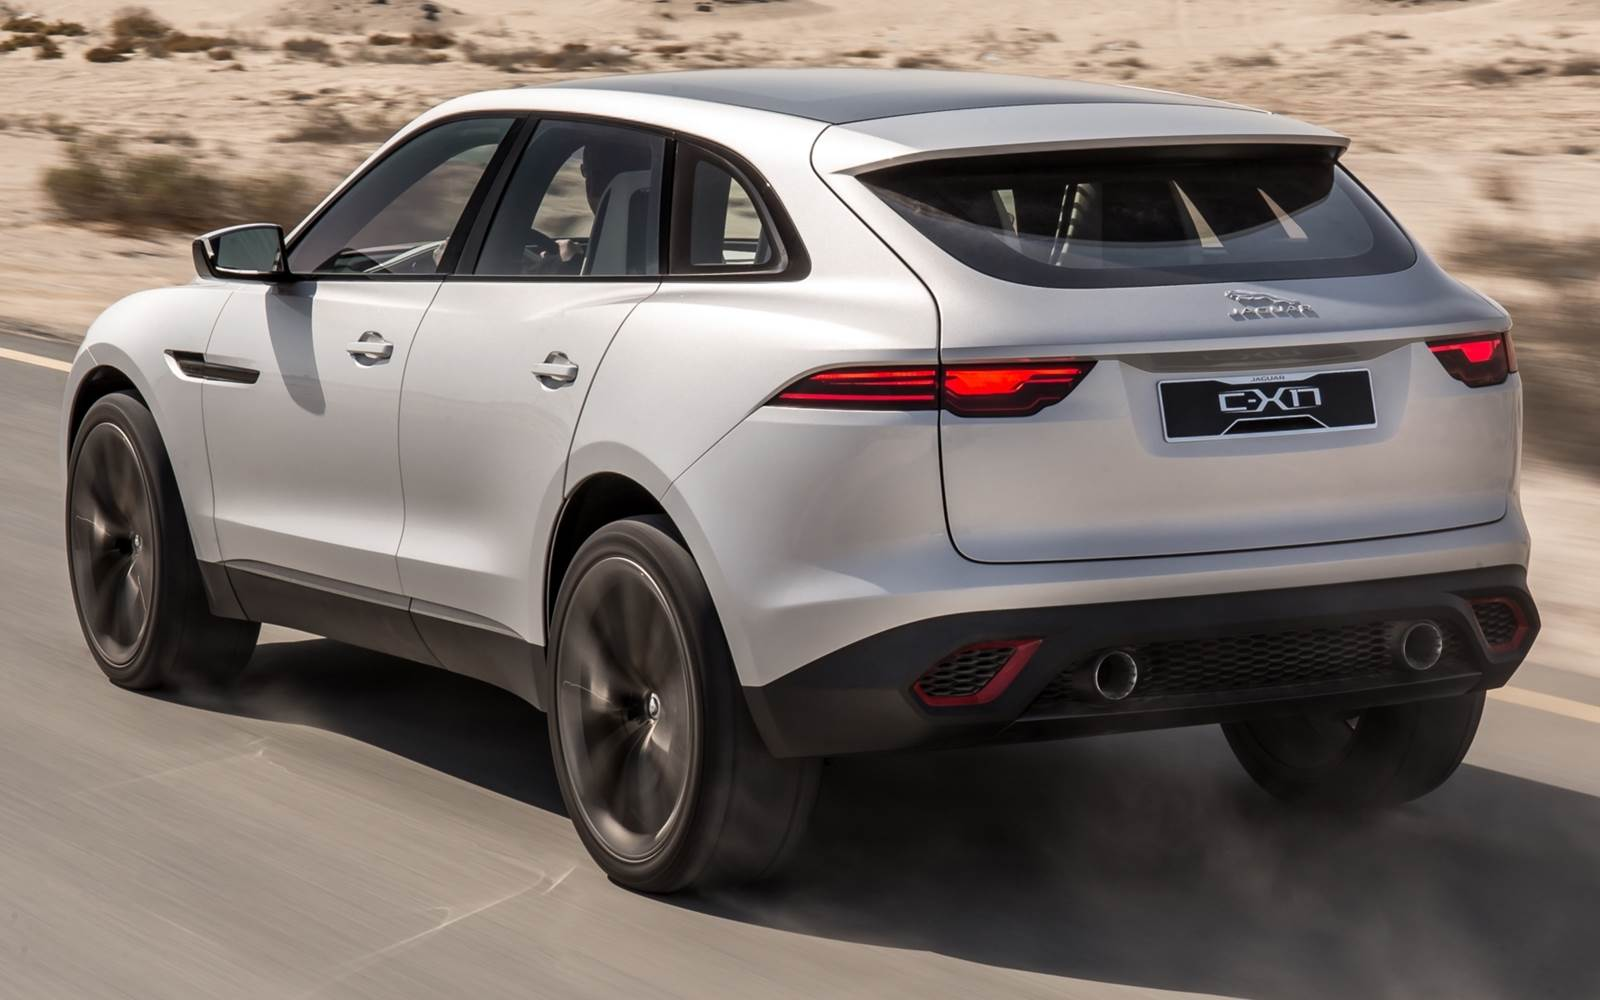 2016 Jaguar F Pace SUV The First Sport Utility Vehicle